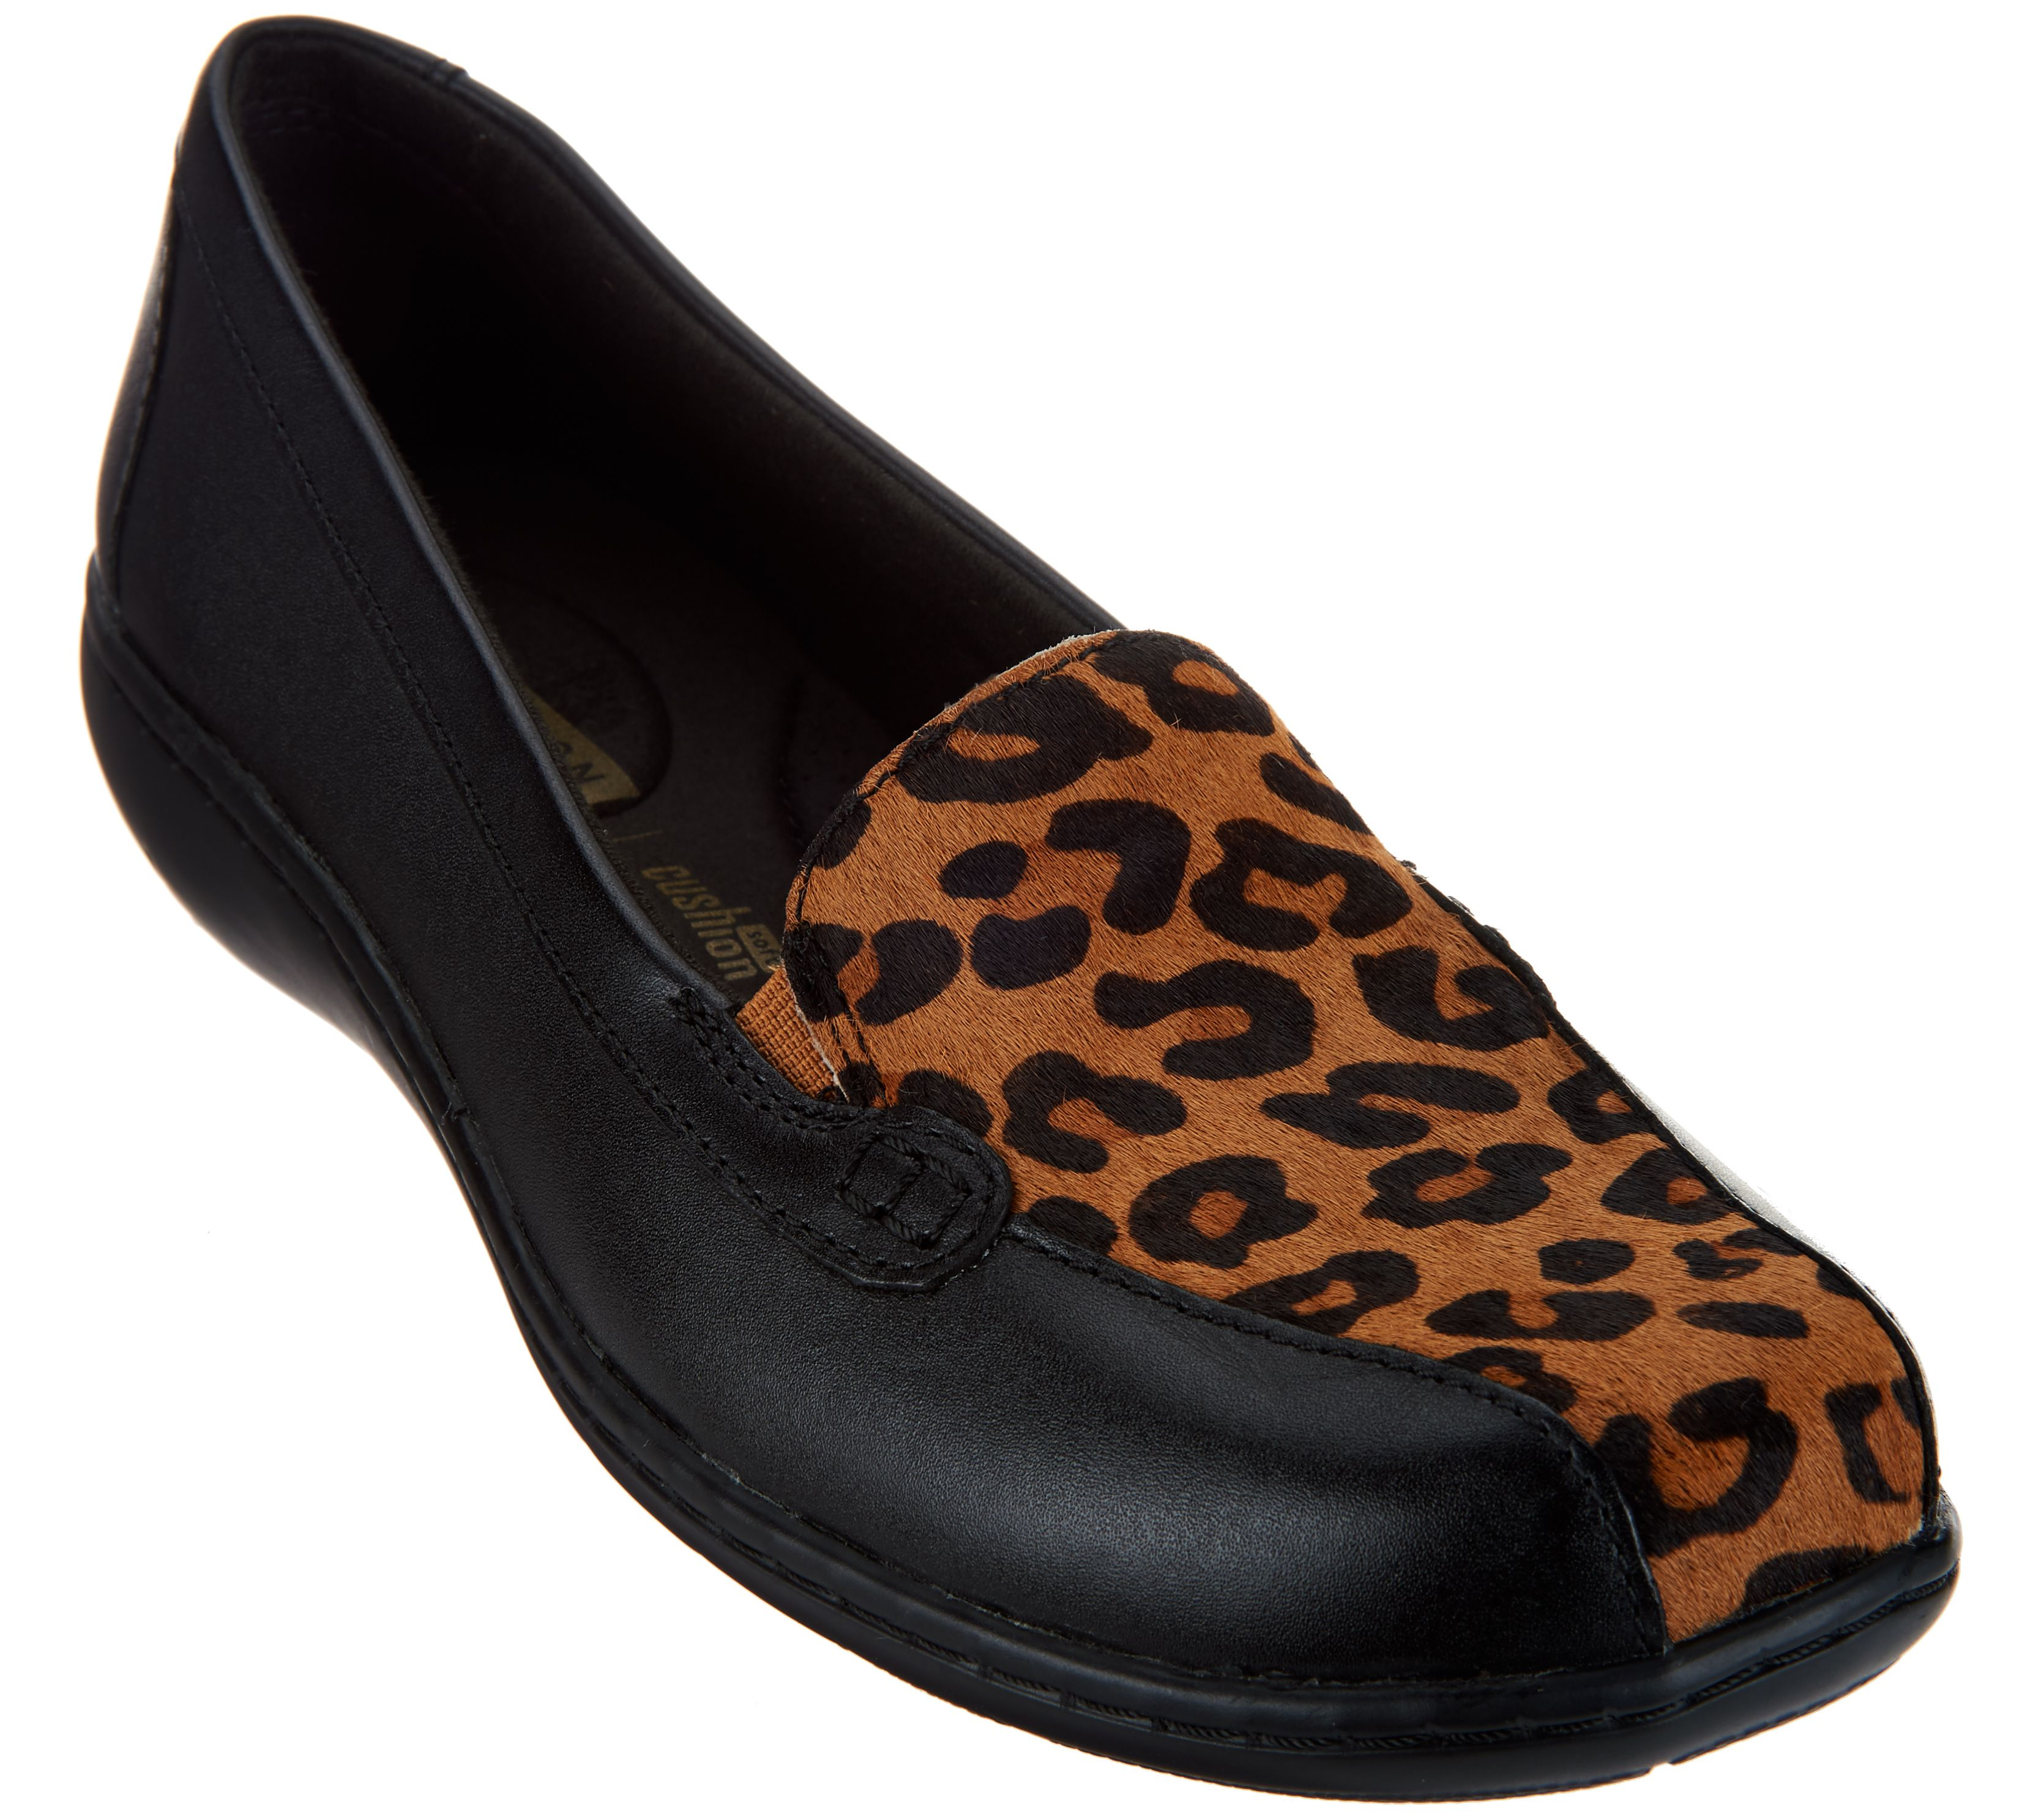 super popular e5ac2 c1f77 Clarks Collection Leather Slip-on Loafers - Bayou — QVC.com